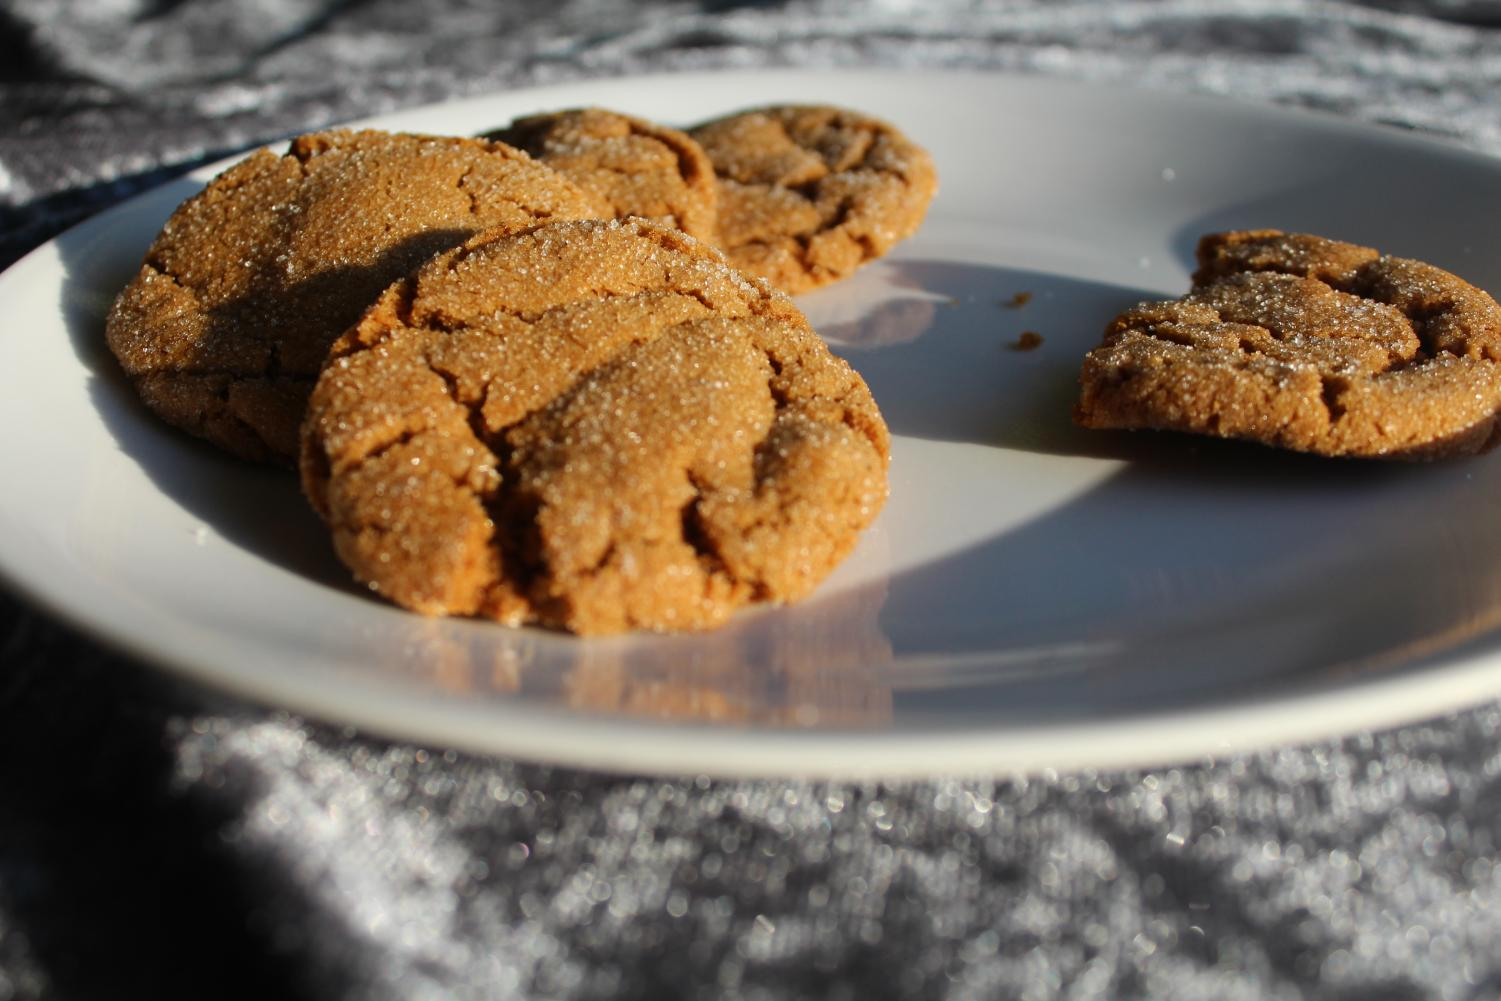 While not initially recognizable as gingerbread cookies, these treats retain the spices unique to gingerbread. Their taste, reminiscent of a grandmother's spice cabinet, evokes the same reaction as that of the traditional gingerbread cookie.